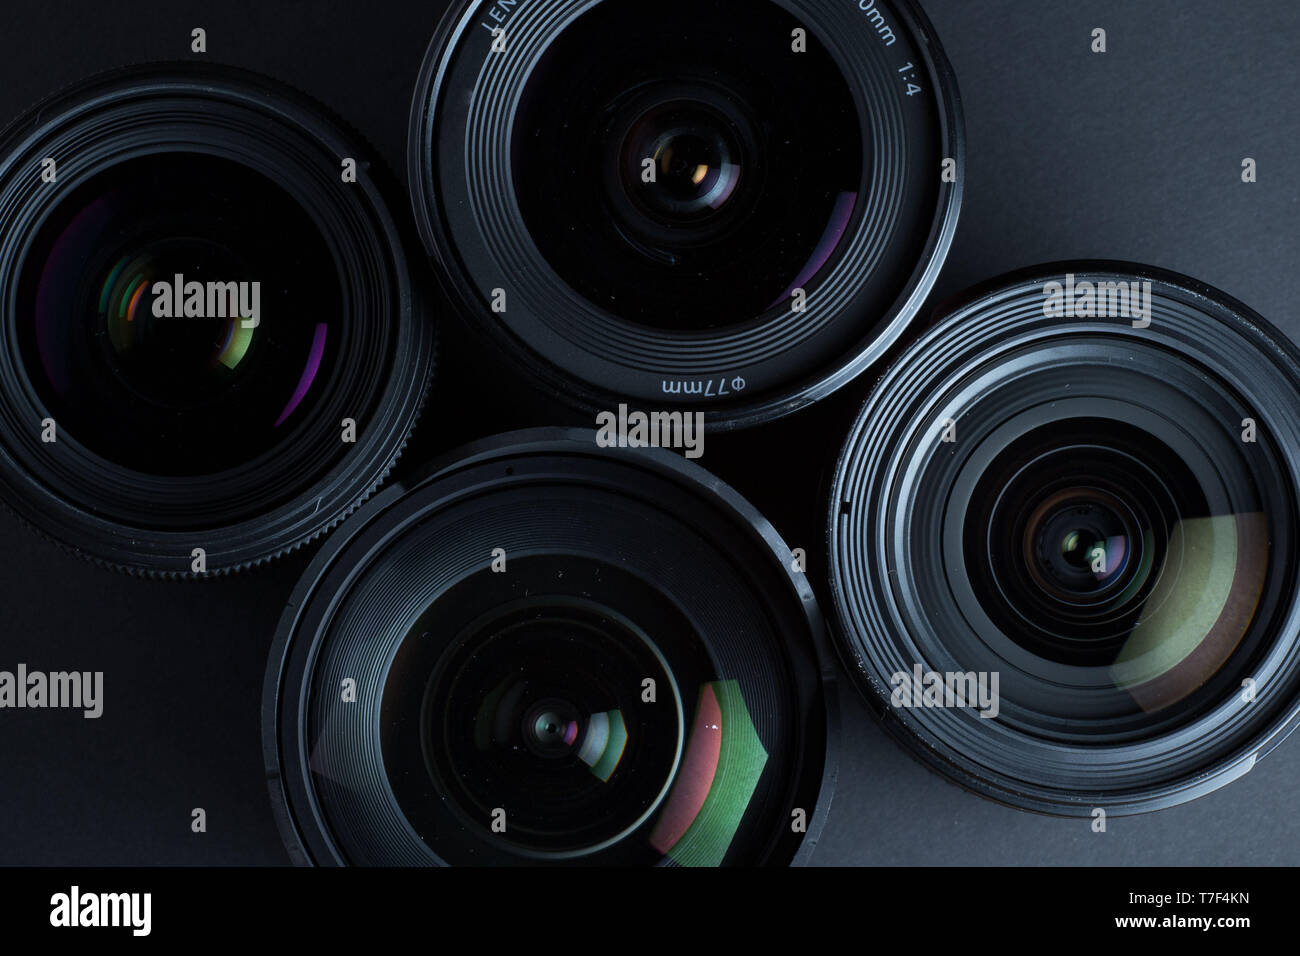 Set of various DSLR lenses with colorful reflections - Stock Image